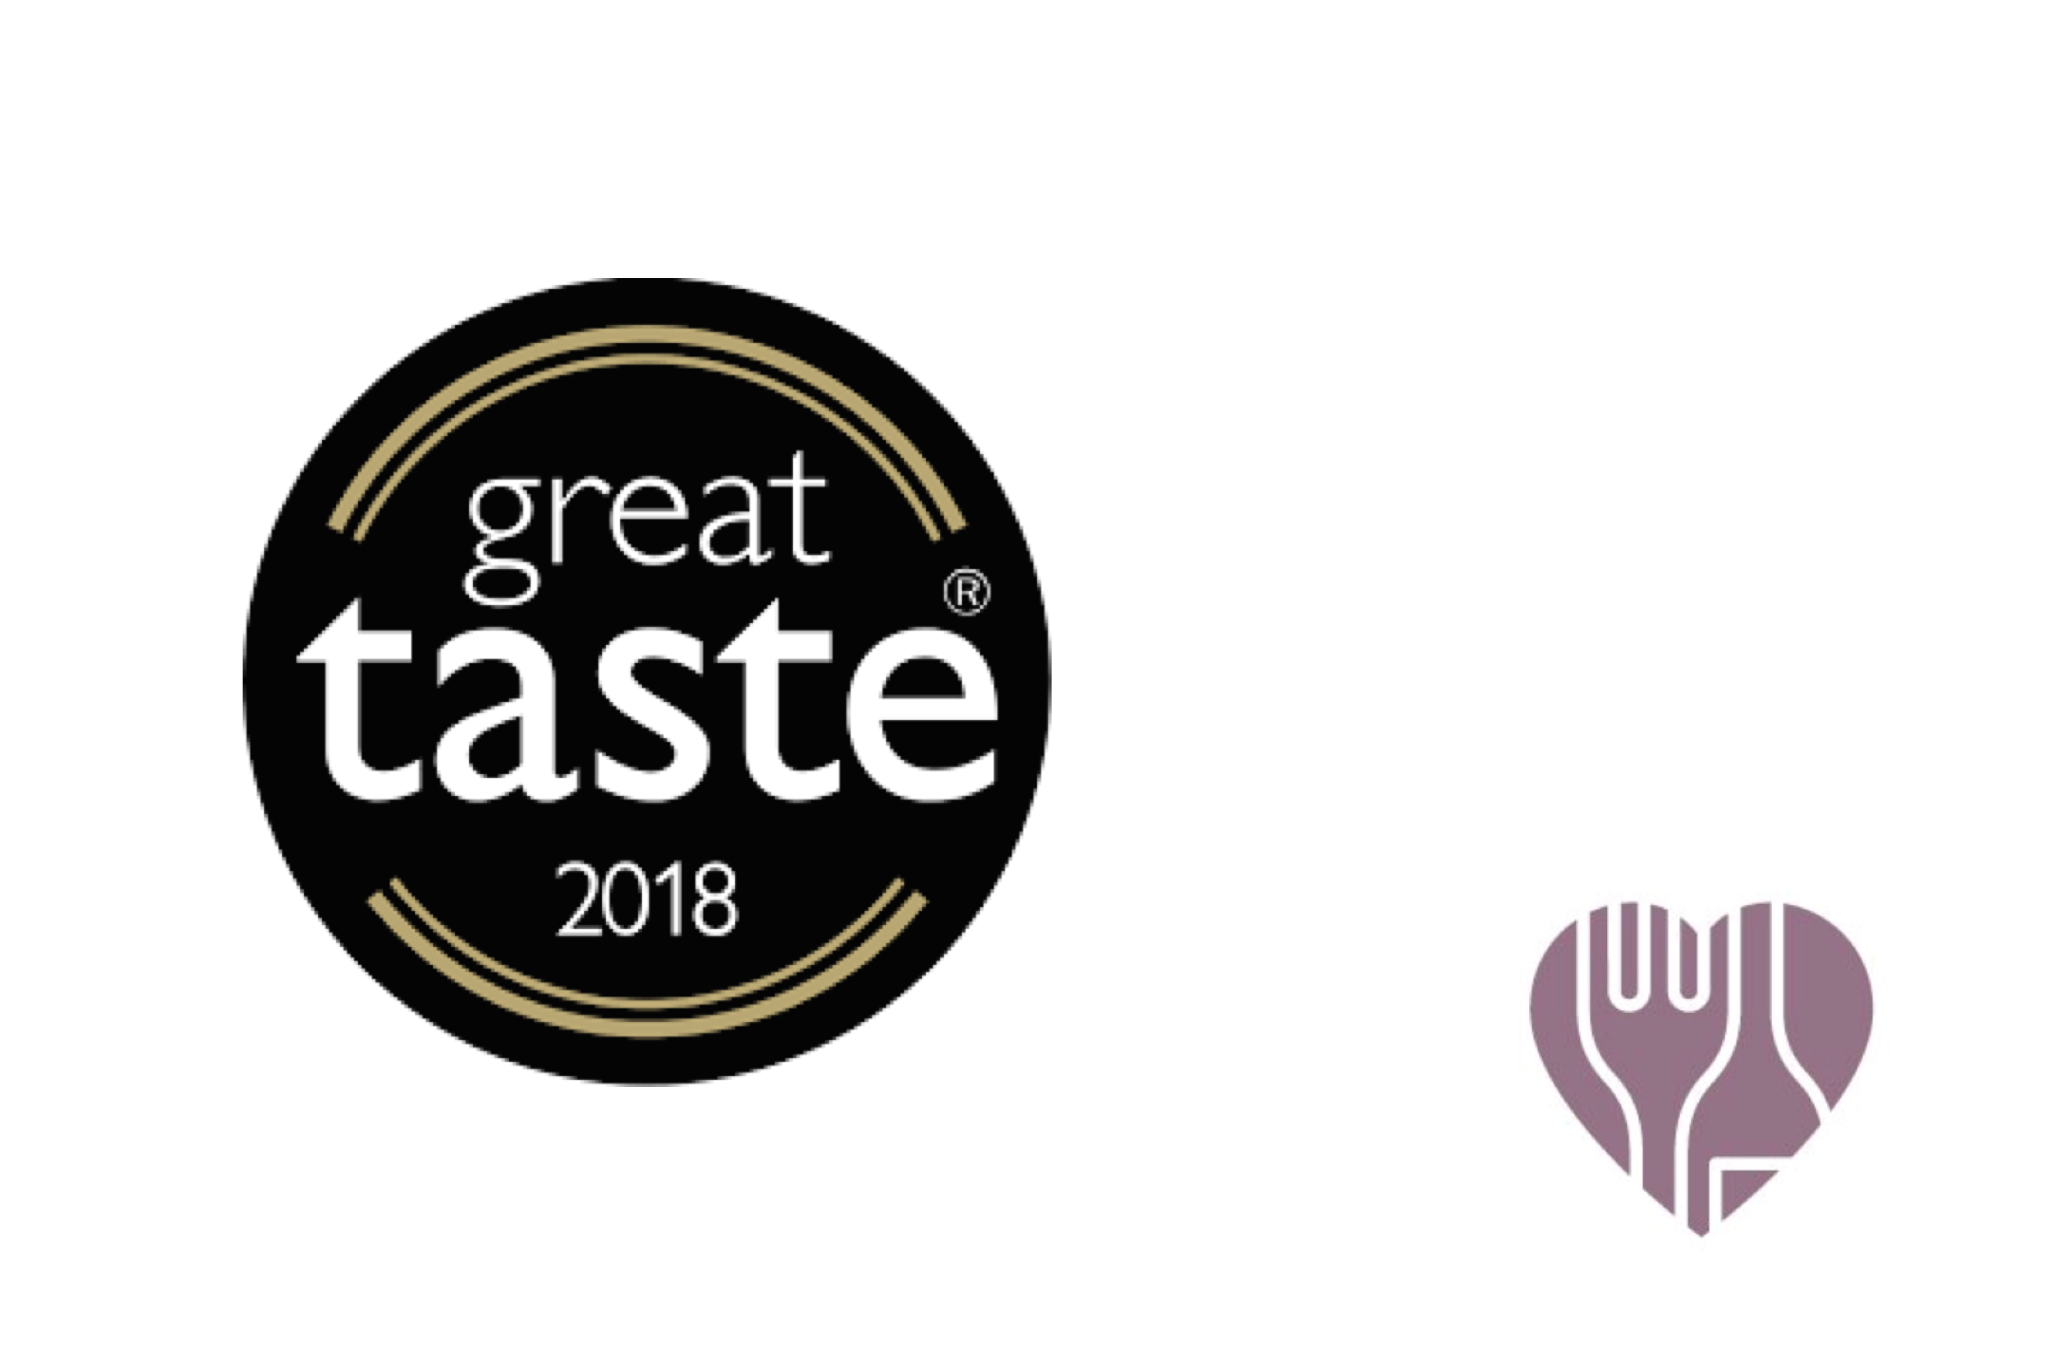 dd55a1d51b2 The Great Taste Award winners are out...but what does this mean ...